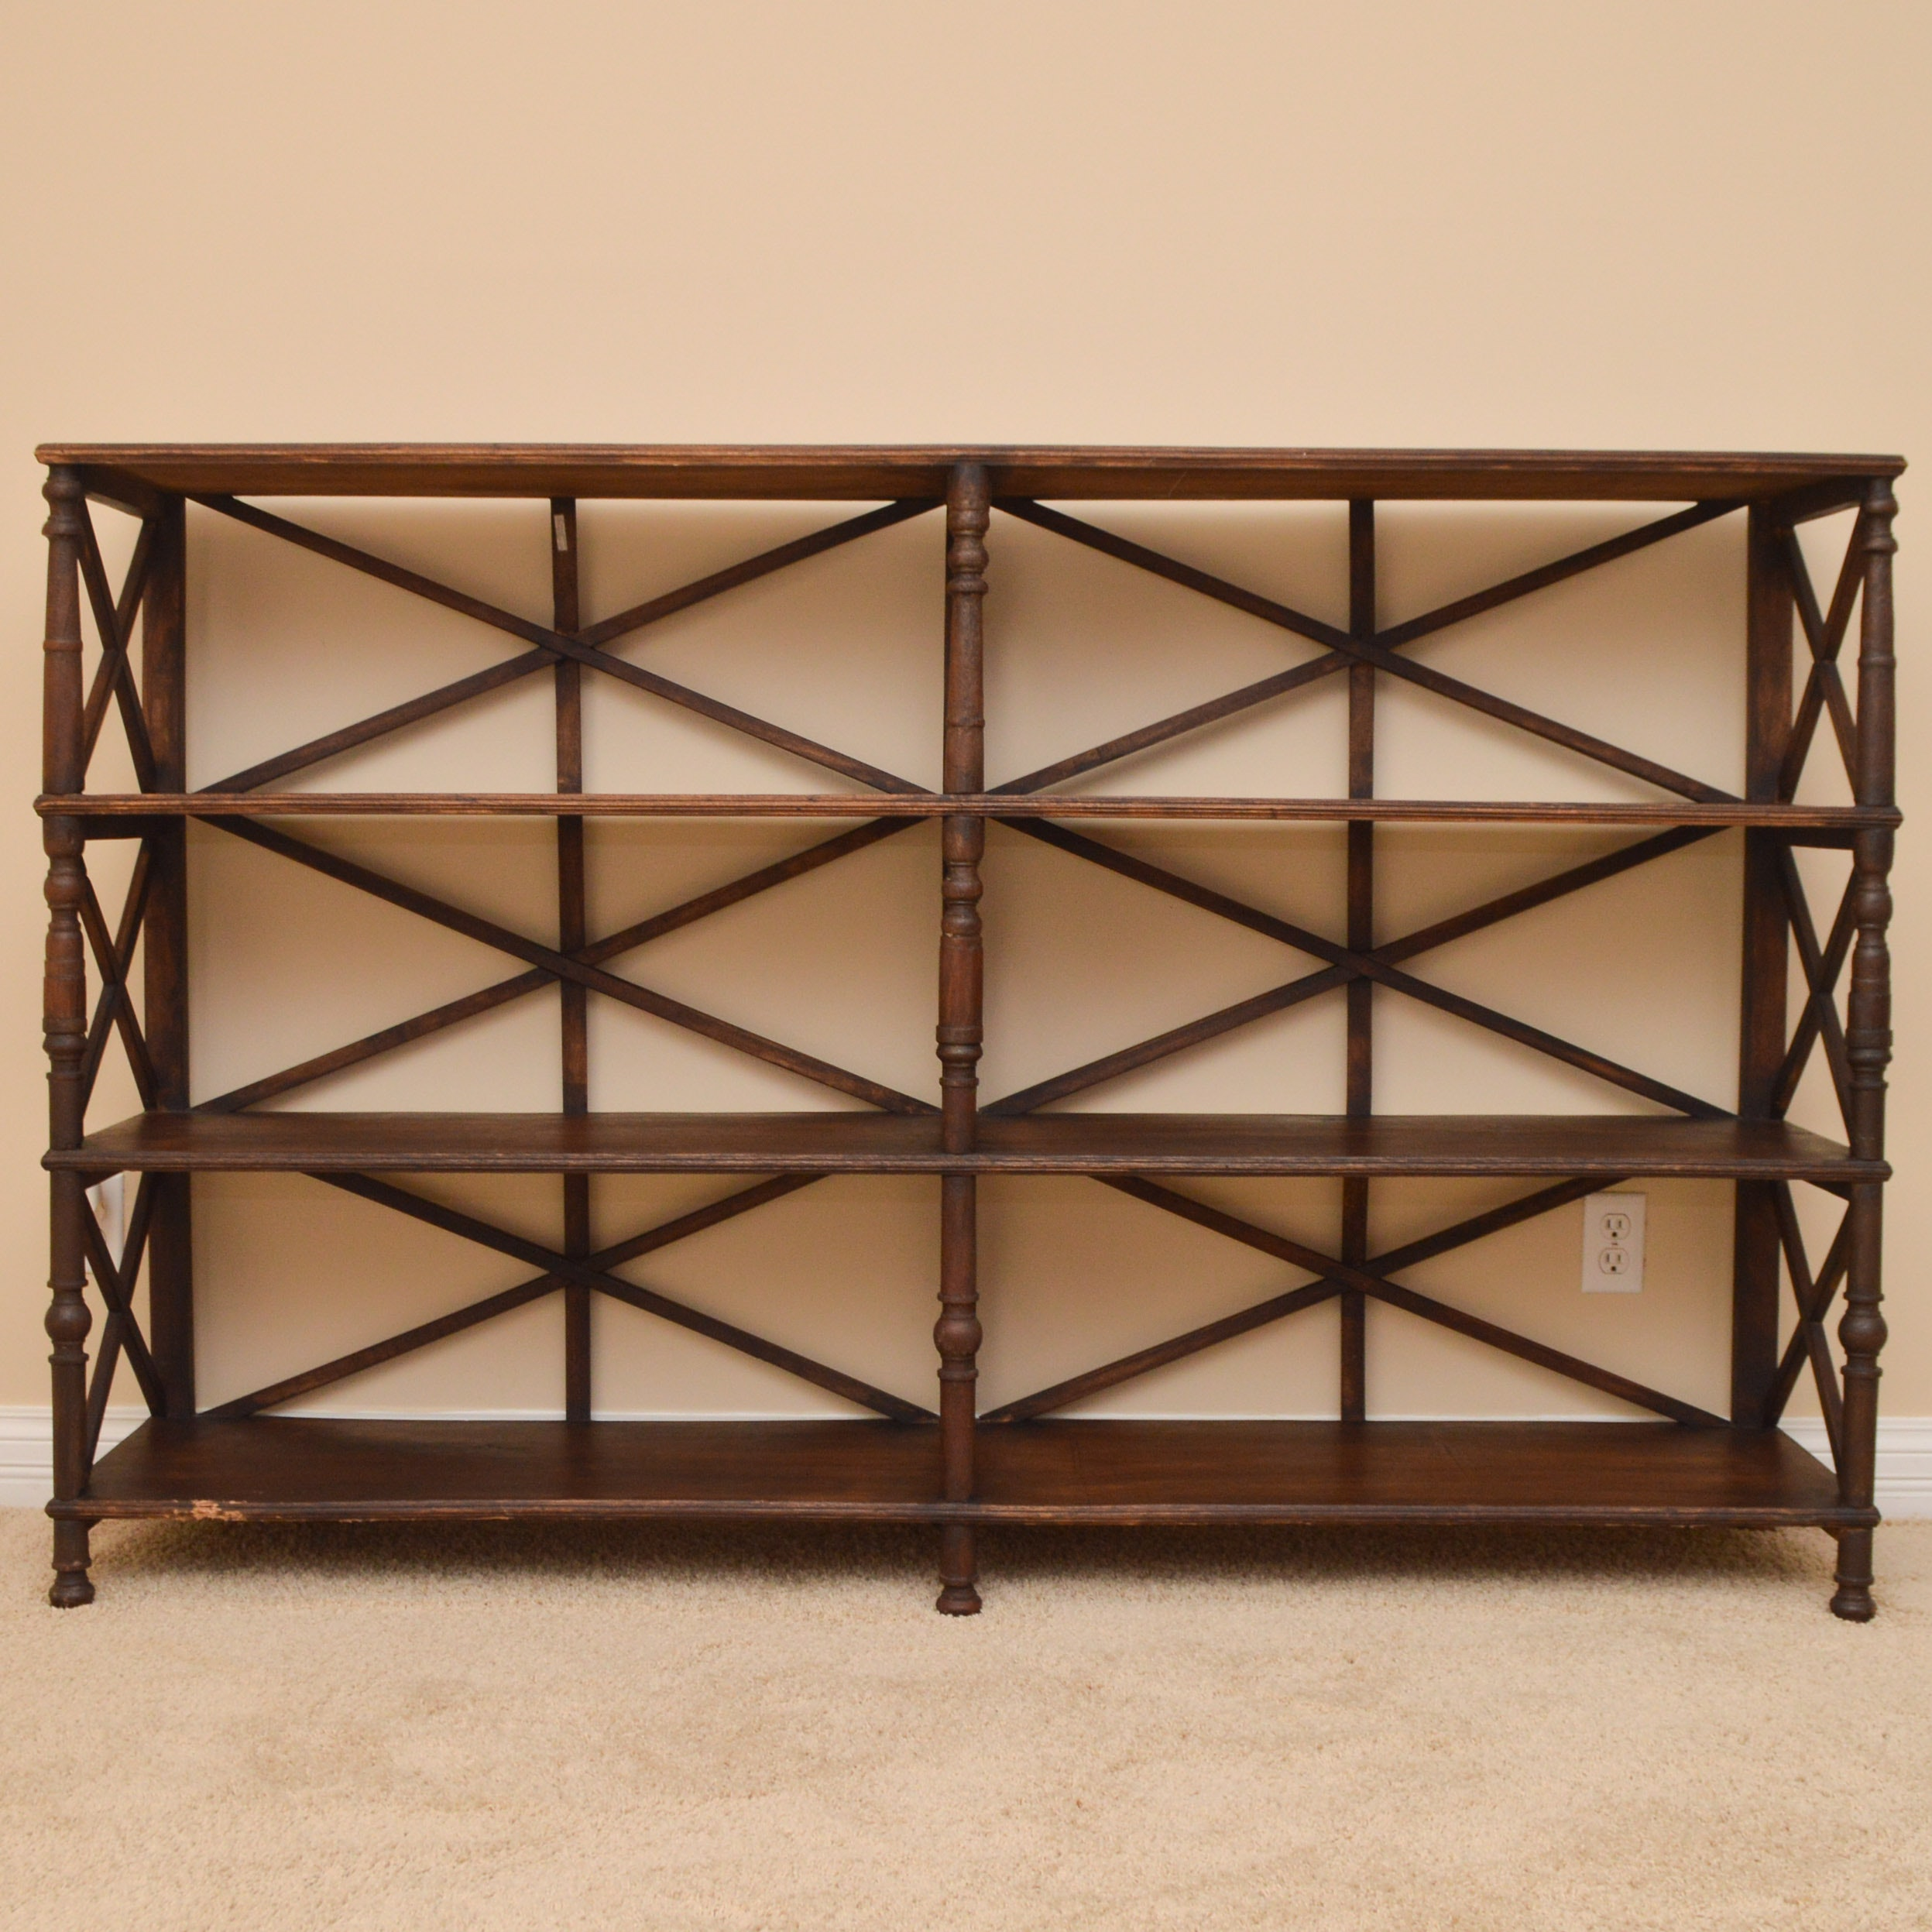 Walnut Stained Standing Wood Shelves